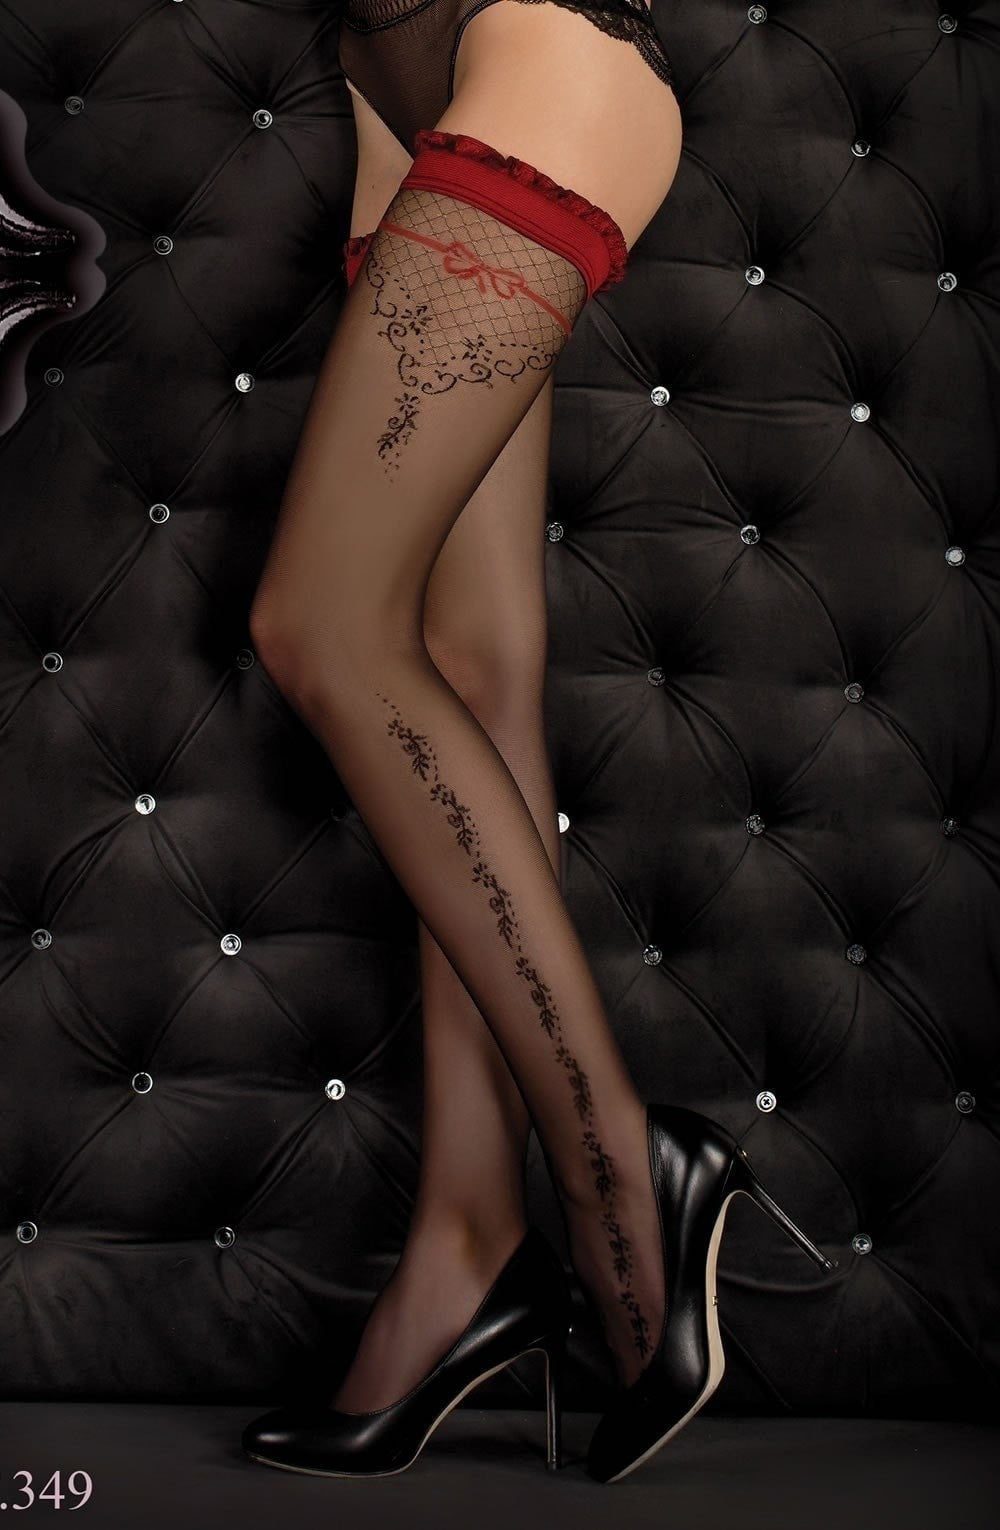 Ballerina Hold Ups 349 (Black/Red) - Hold Up Stockings - Ballerina - Charm and Lace Boutique